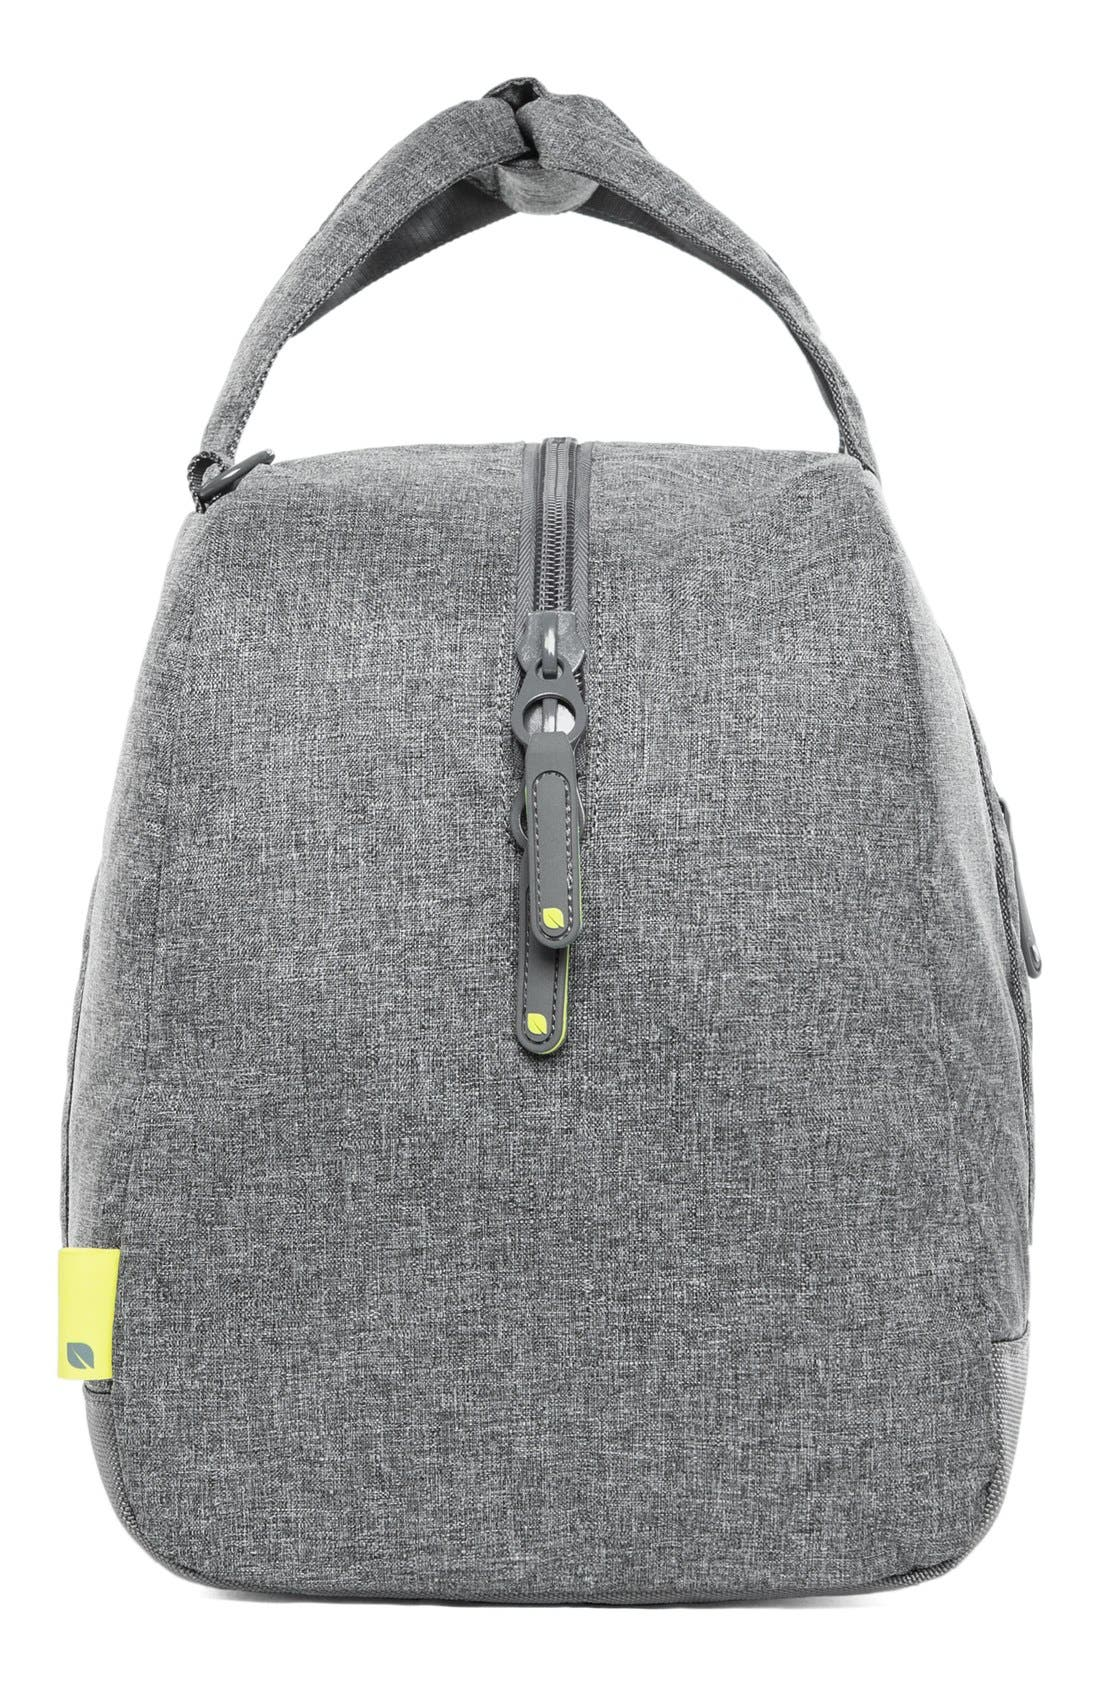 EO Duffel Bag,                             Alternate thumbnail 5, color,                             Heather Grey